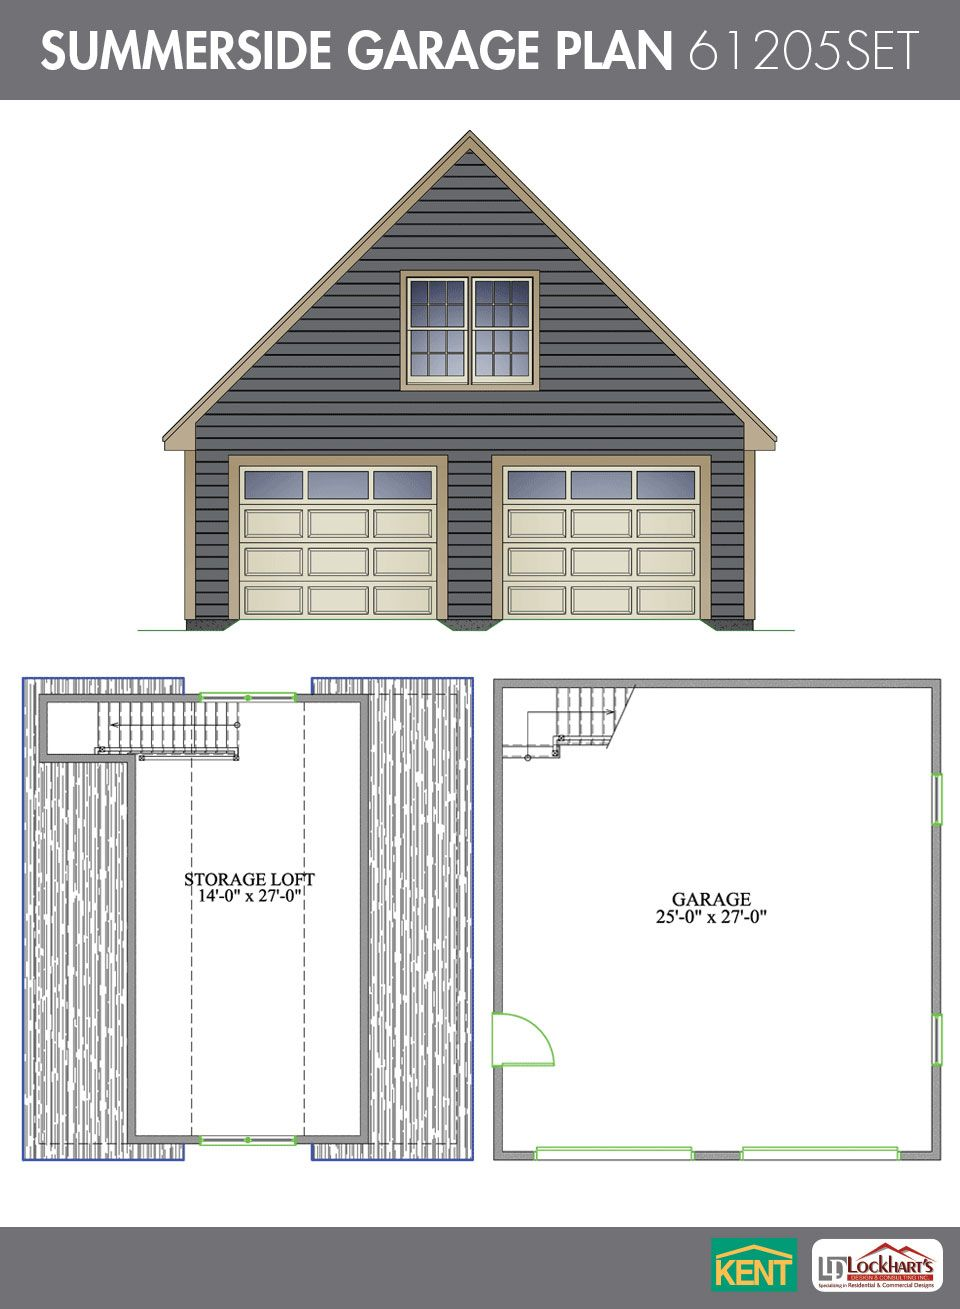 Summerside garage plan 26 39 x 28 39 2 car garage 378 sq for 20 x 24 garage plans with loft